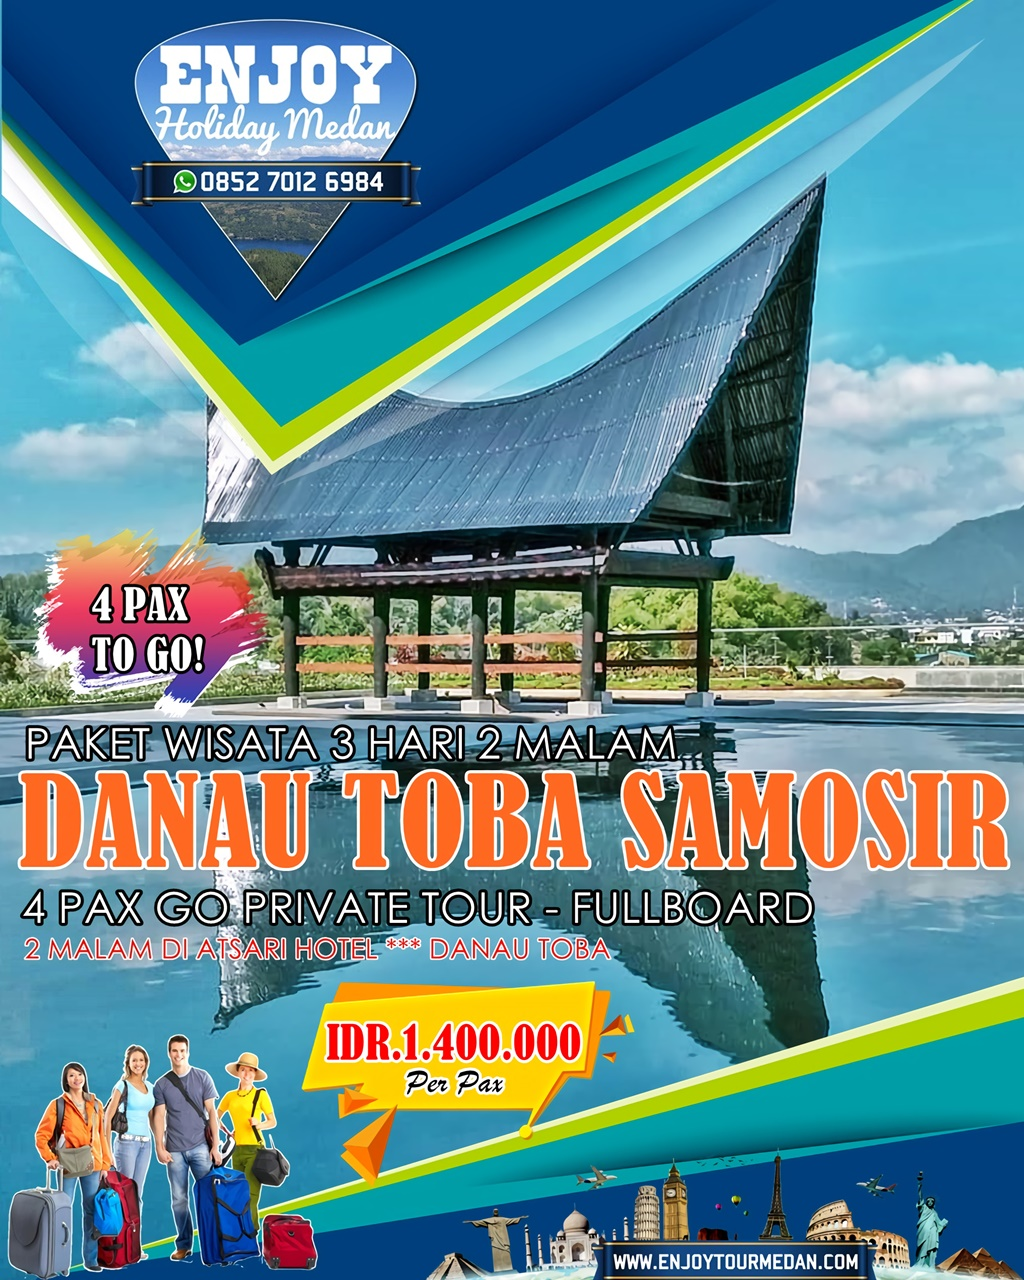 Lake Toba Tour Packages - Tour Lake Toba From Singapore - Lake Toba Tour From Malaysia